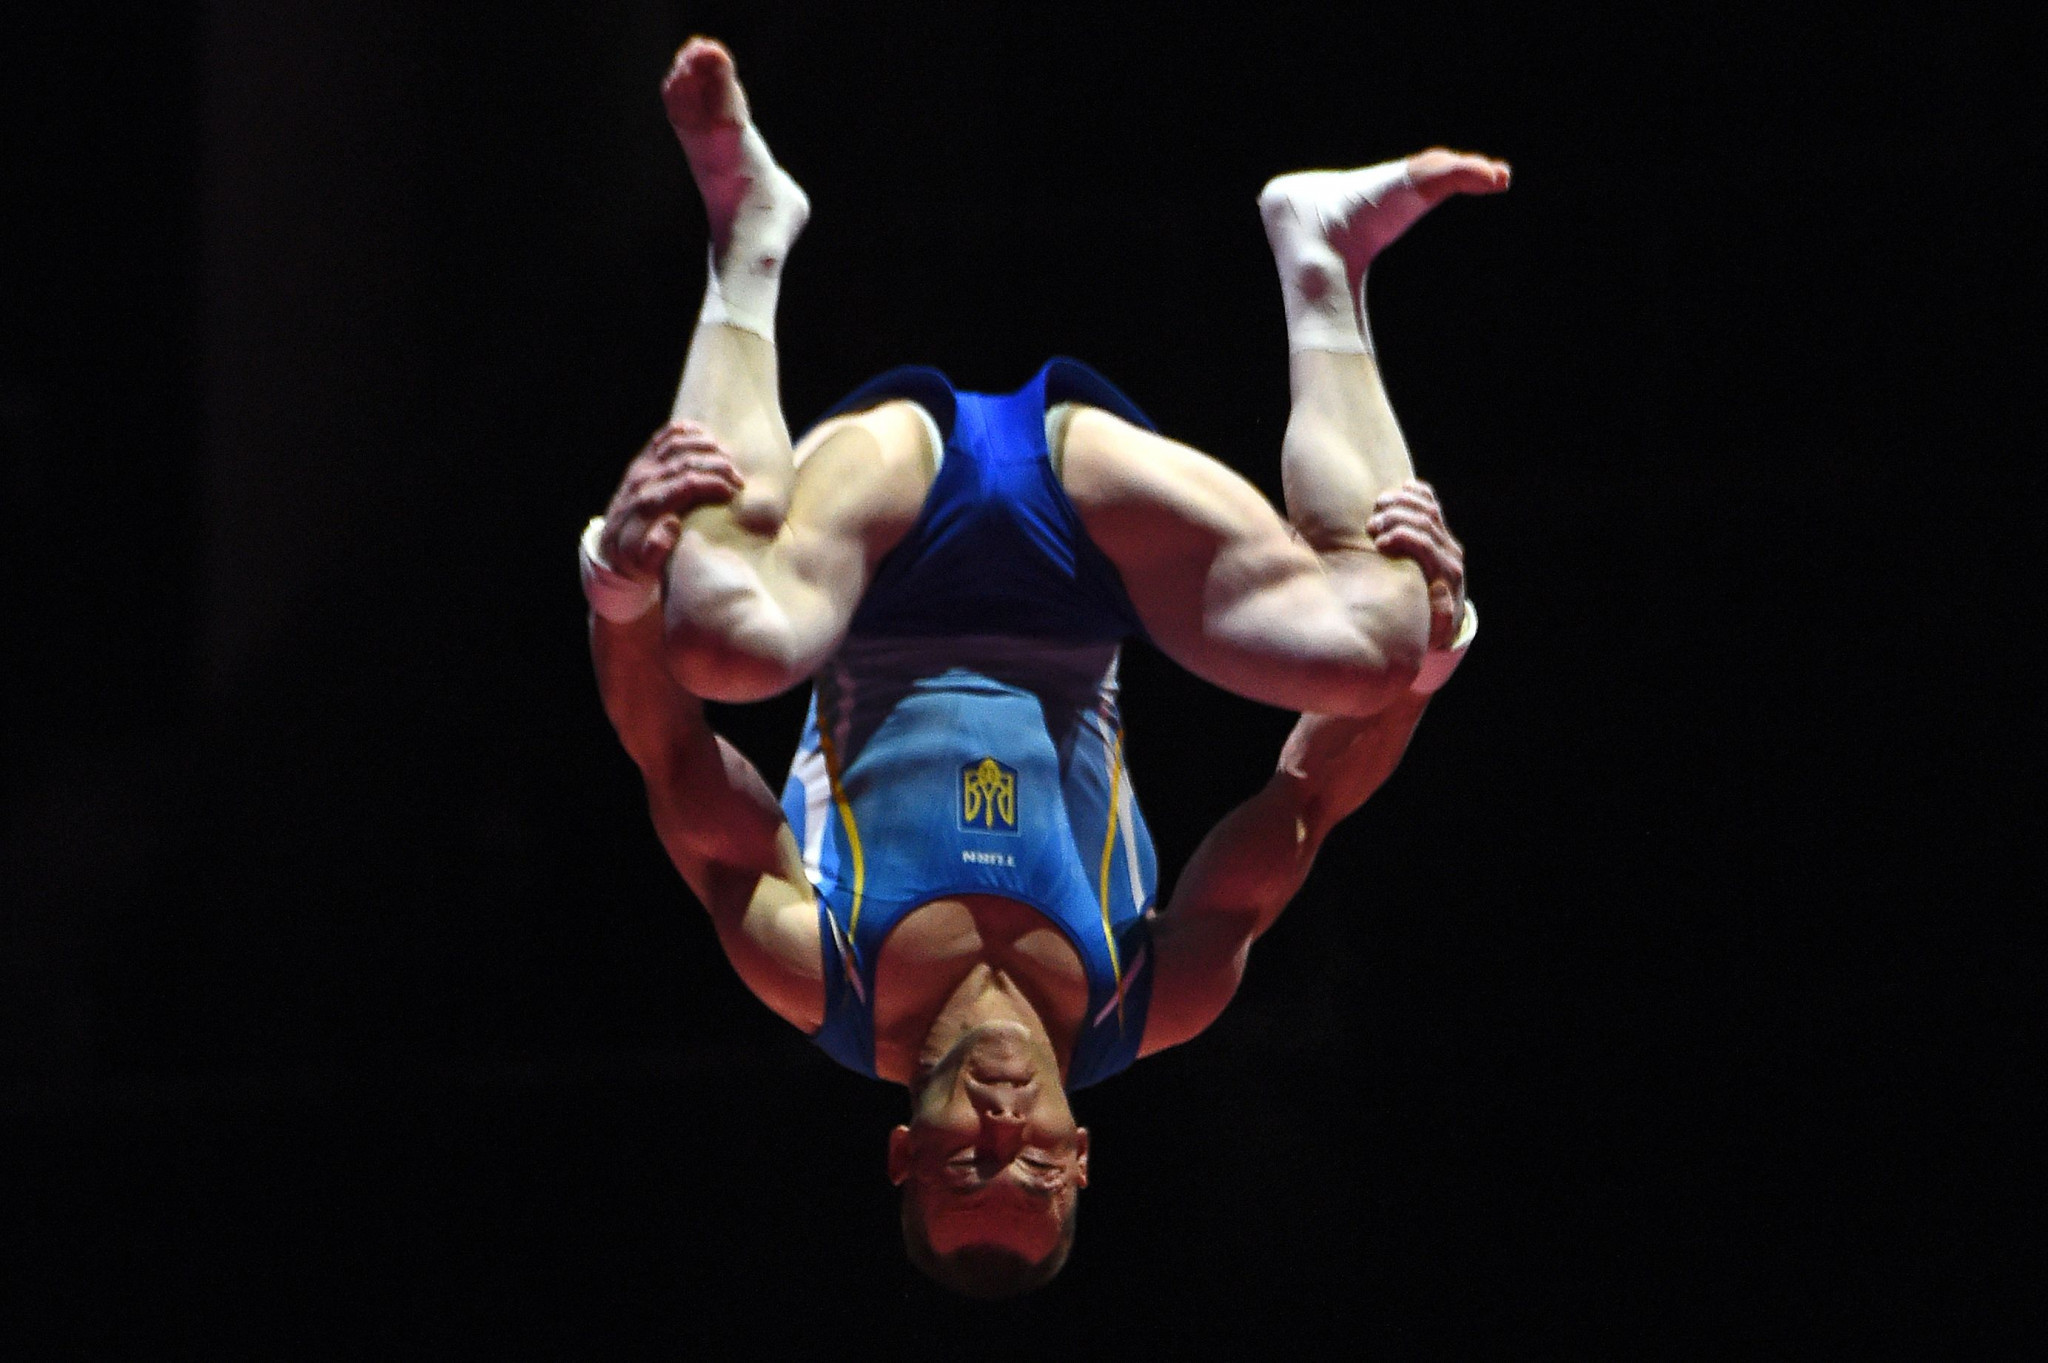 Olympic medallists progress to finals at FIG Individual Apparatus World Cup